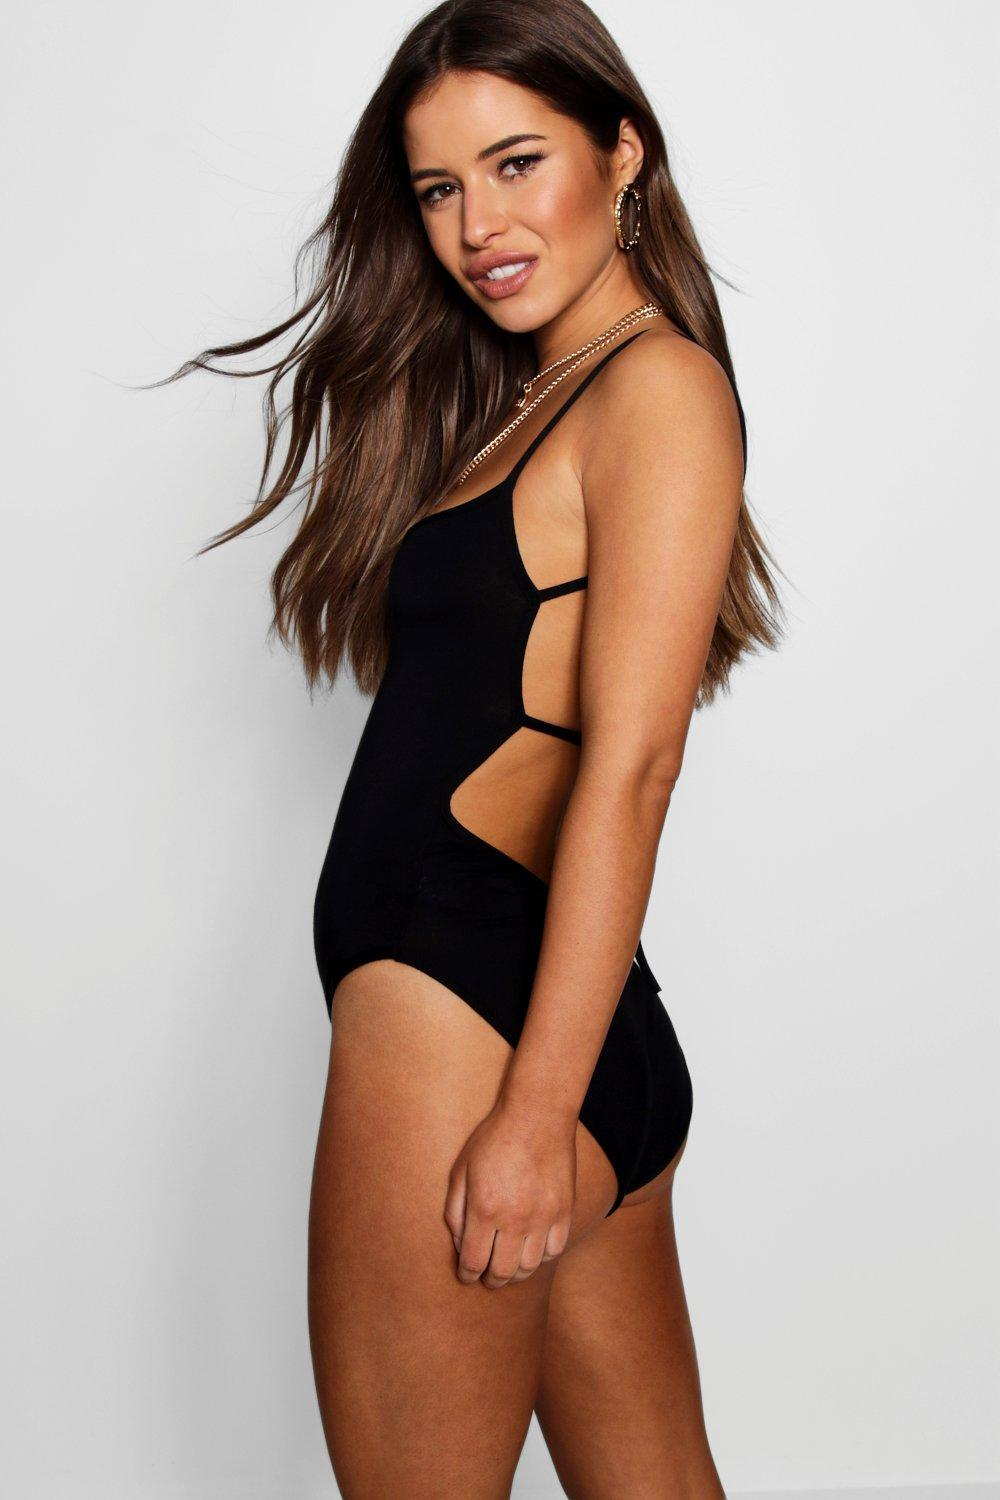 Boohoo Petite Tie Back High Neck Strappy Bodysuit Pre Order For Sale Popular Sale Online Clearance Get Authentic 0MqAMe8